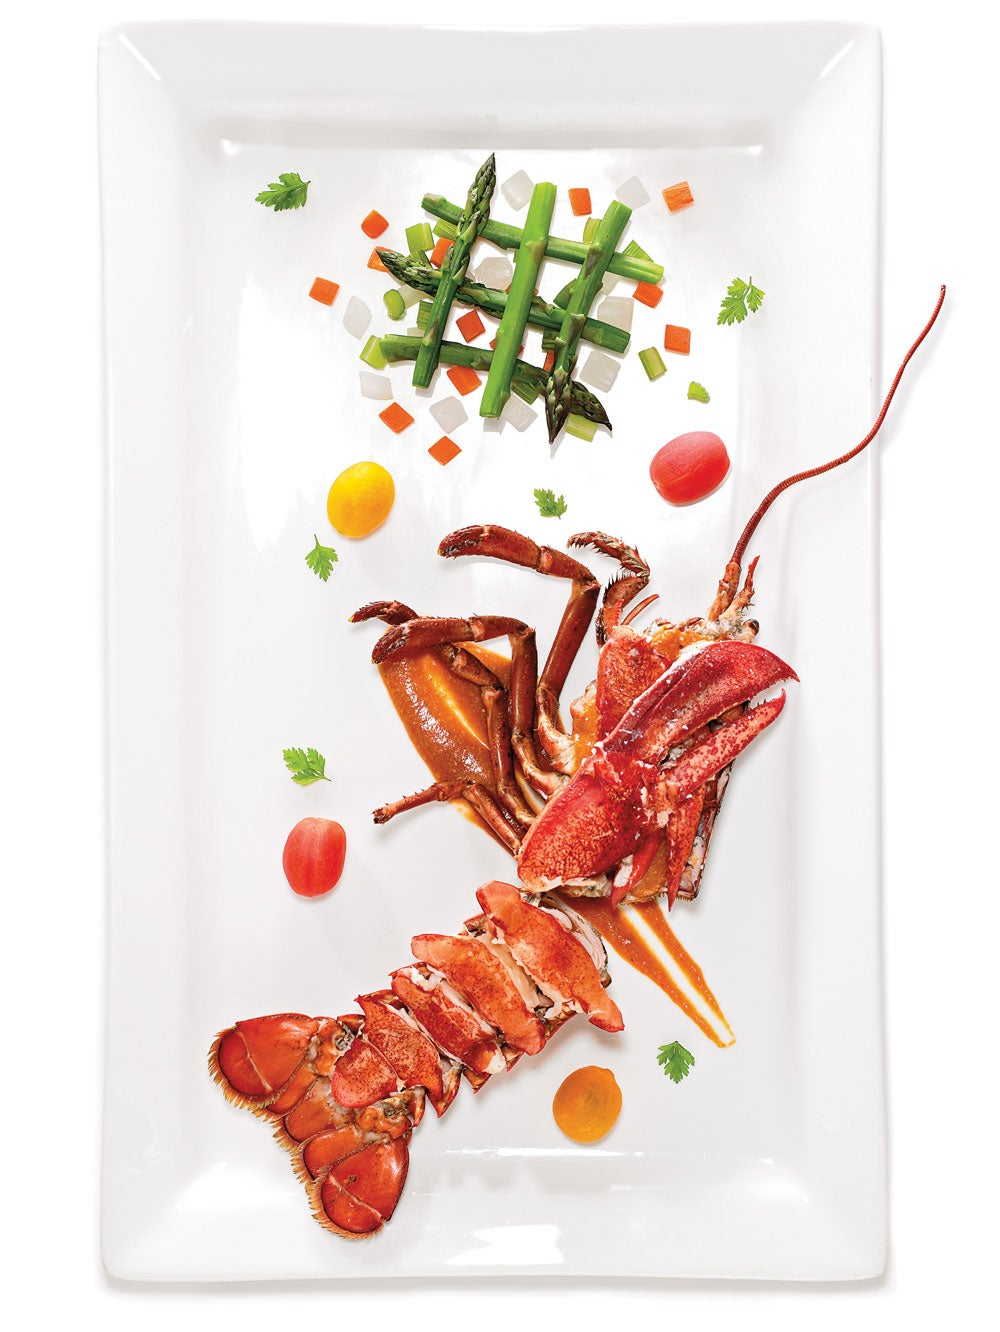 Lobster Américaine with Asparagus and Tomatoes